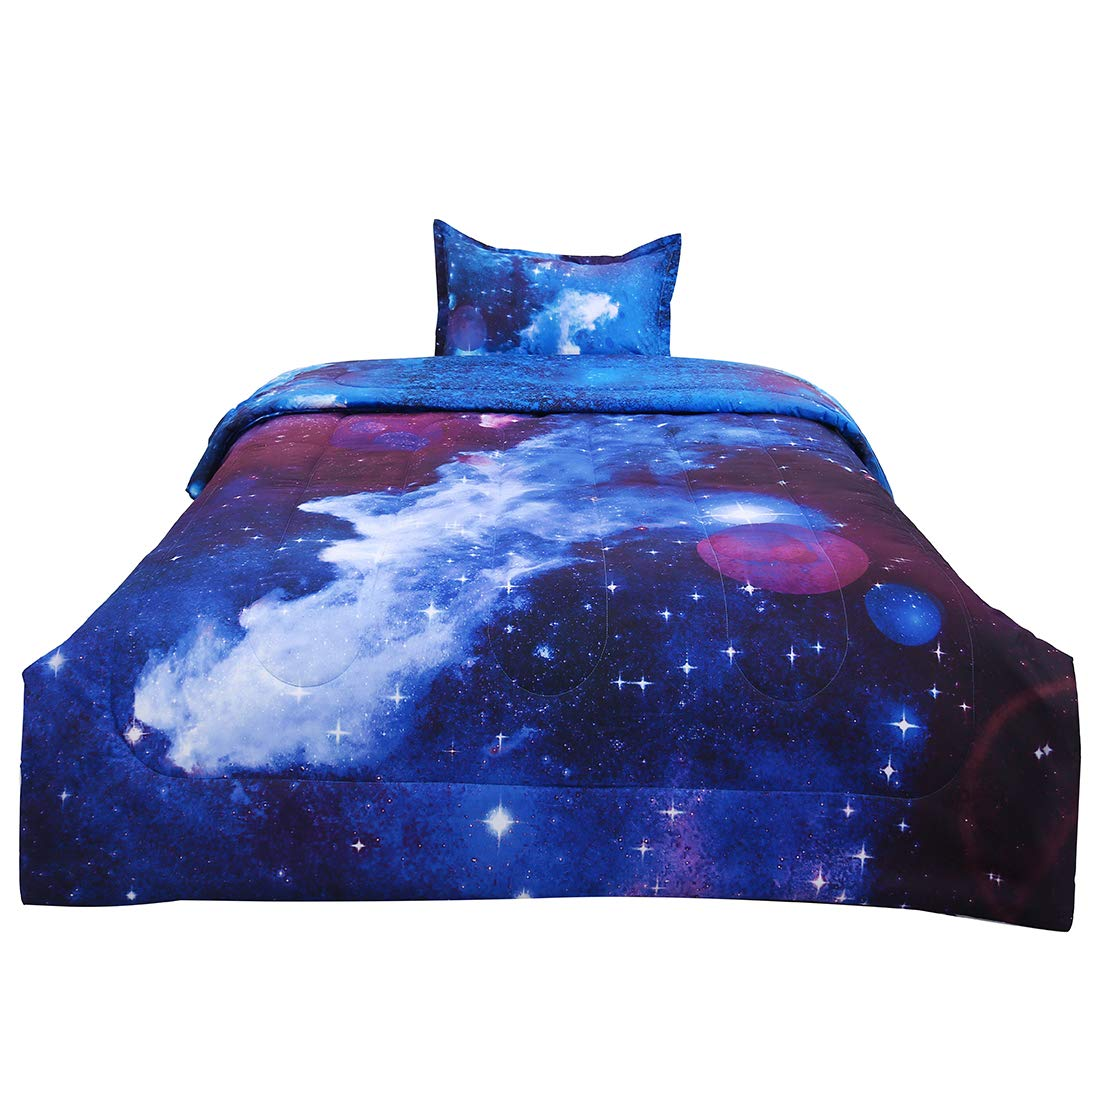 uxcell Twin 2-Piece Galaxies Dark Blue Comforter Sets - 3D Space Themed - All-Season Down Alternative Quilted Duvet - Reversible Design - Includes 1 Comforter, 1 Pillow Case